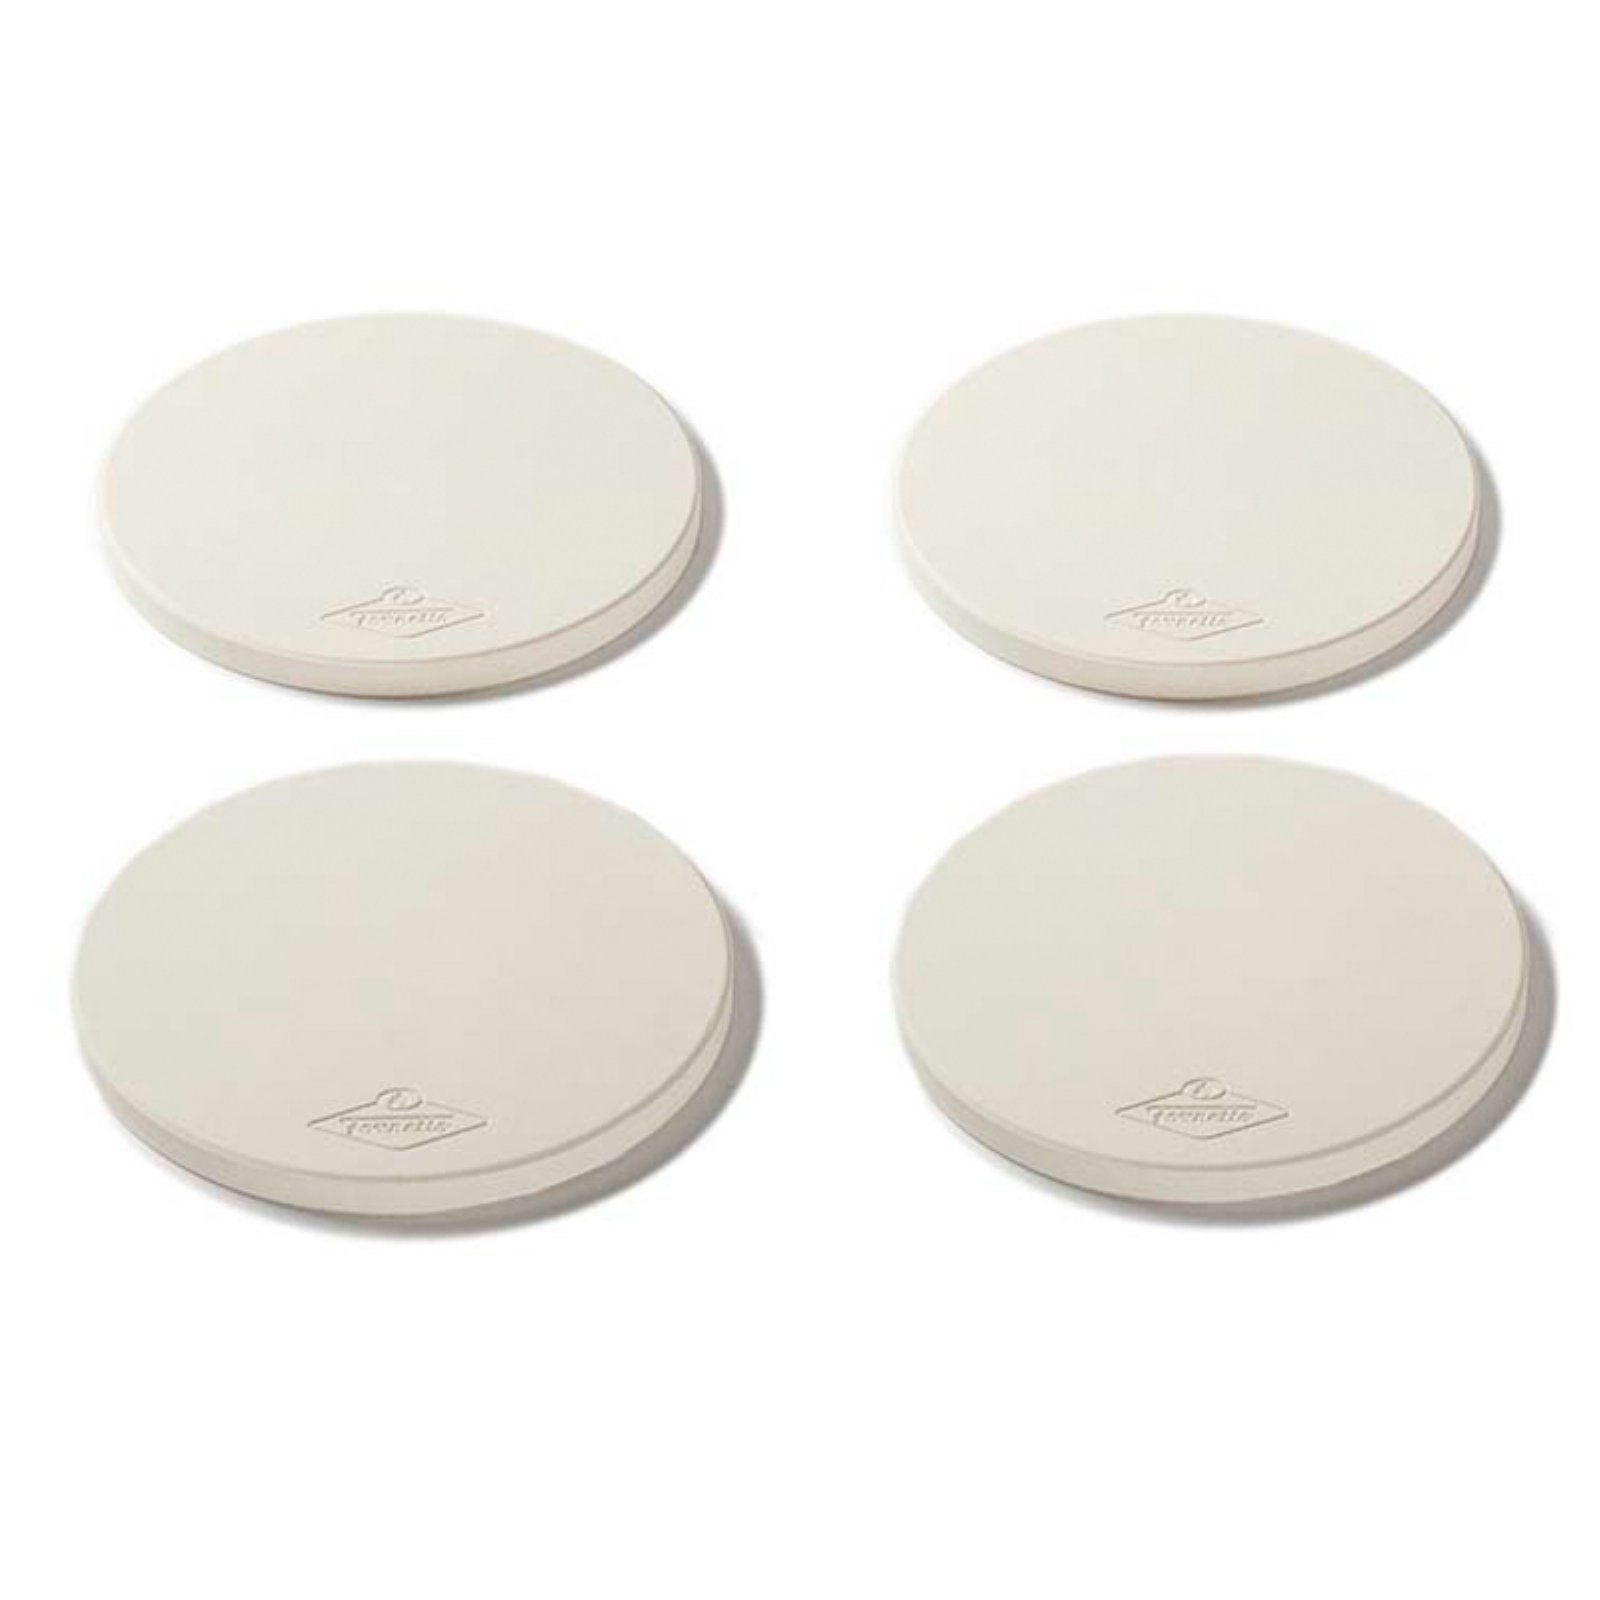 Fornetto 8 in. Round Mini Pizza Stone Set of 4 by